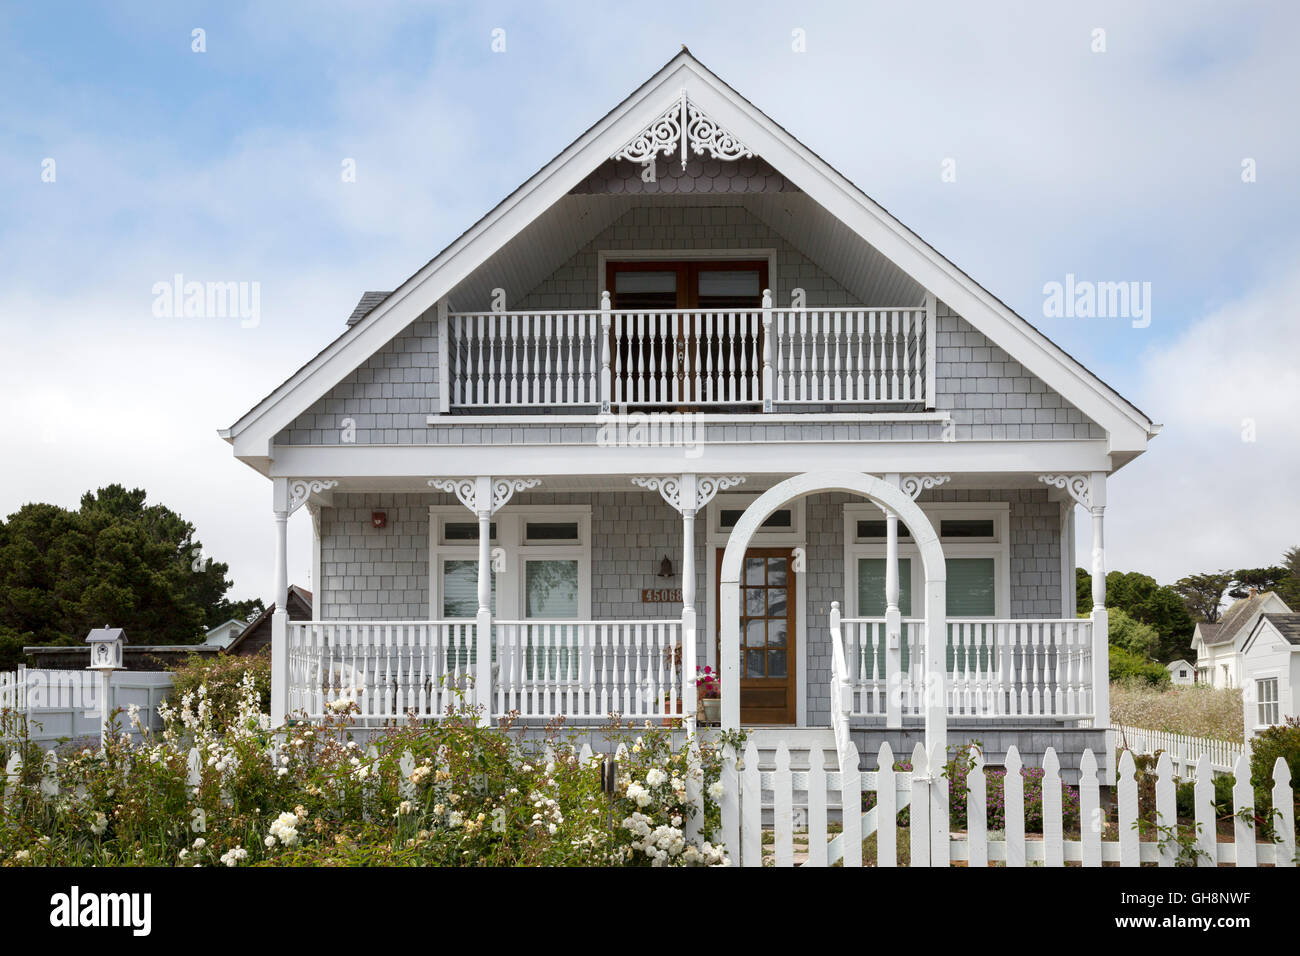 Cute Victorian home with picket fence and flowers in Mendocino, California. - Stock Image